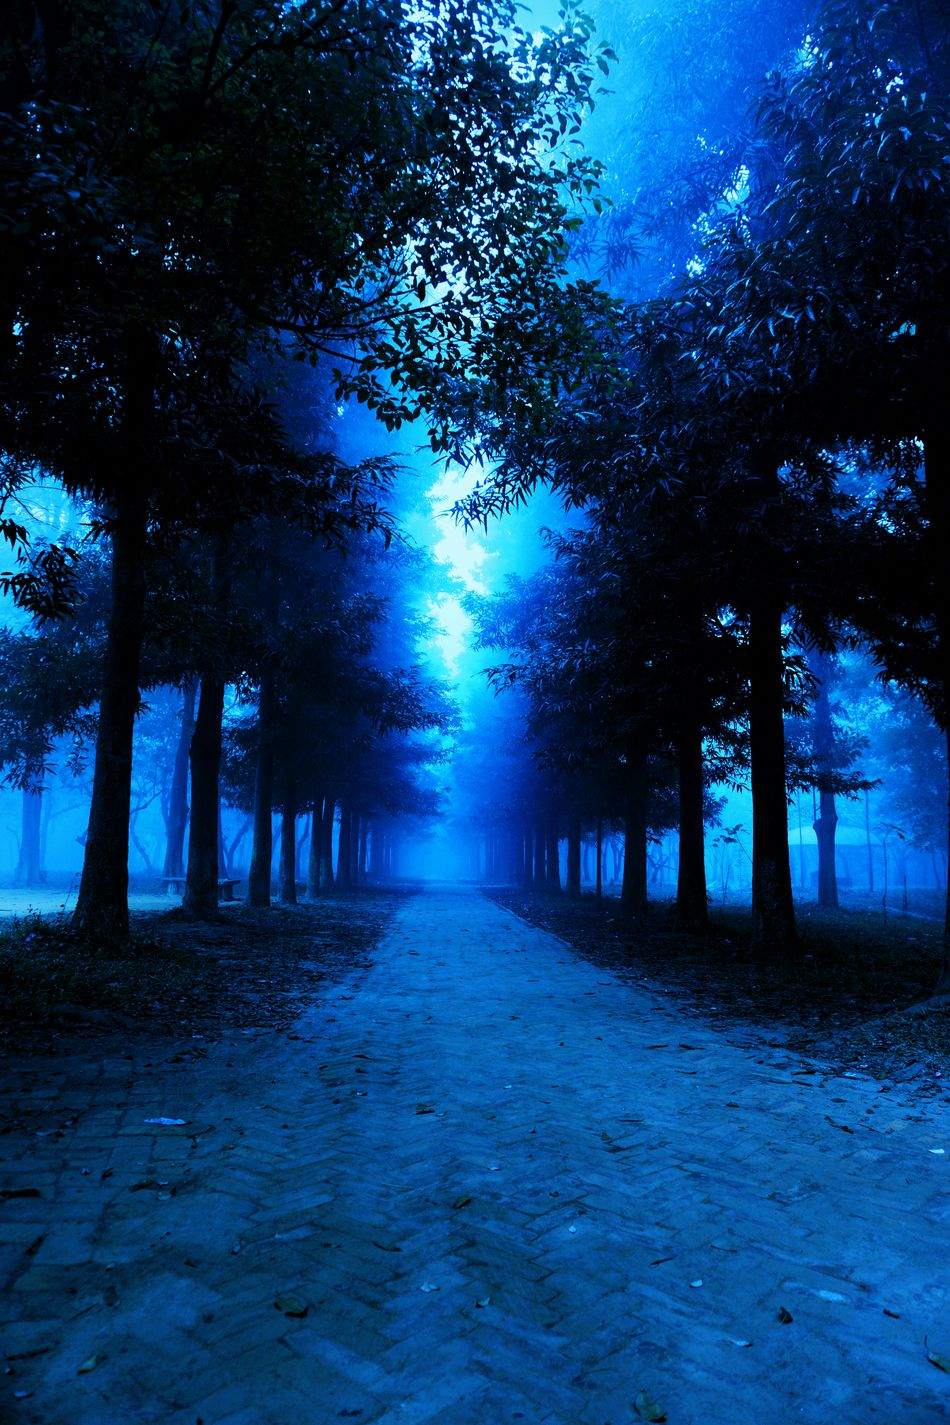 SONY ILCE6000 Photography. Sci-fi Inspired Extraterrestrial Environment Shades Of Blue Pathway In The Forest Q Imagination Shadows Creativity Fine Art Conceptual Layers Negetive Space Creative Editing Light And Shadow Mysteryland Conceptual Photography  Imagination Adventures Adventures Beyond The Ultraworld Mysterious Landscape Mystery Forest Trees On Both Sides Of The Track Foggy Forest Landscape With Whitewall Botanical Garden, Dhaka, Bangladesh